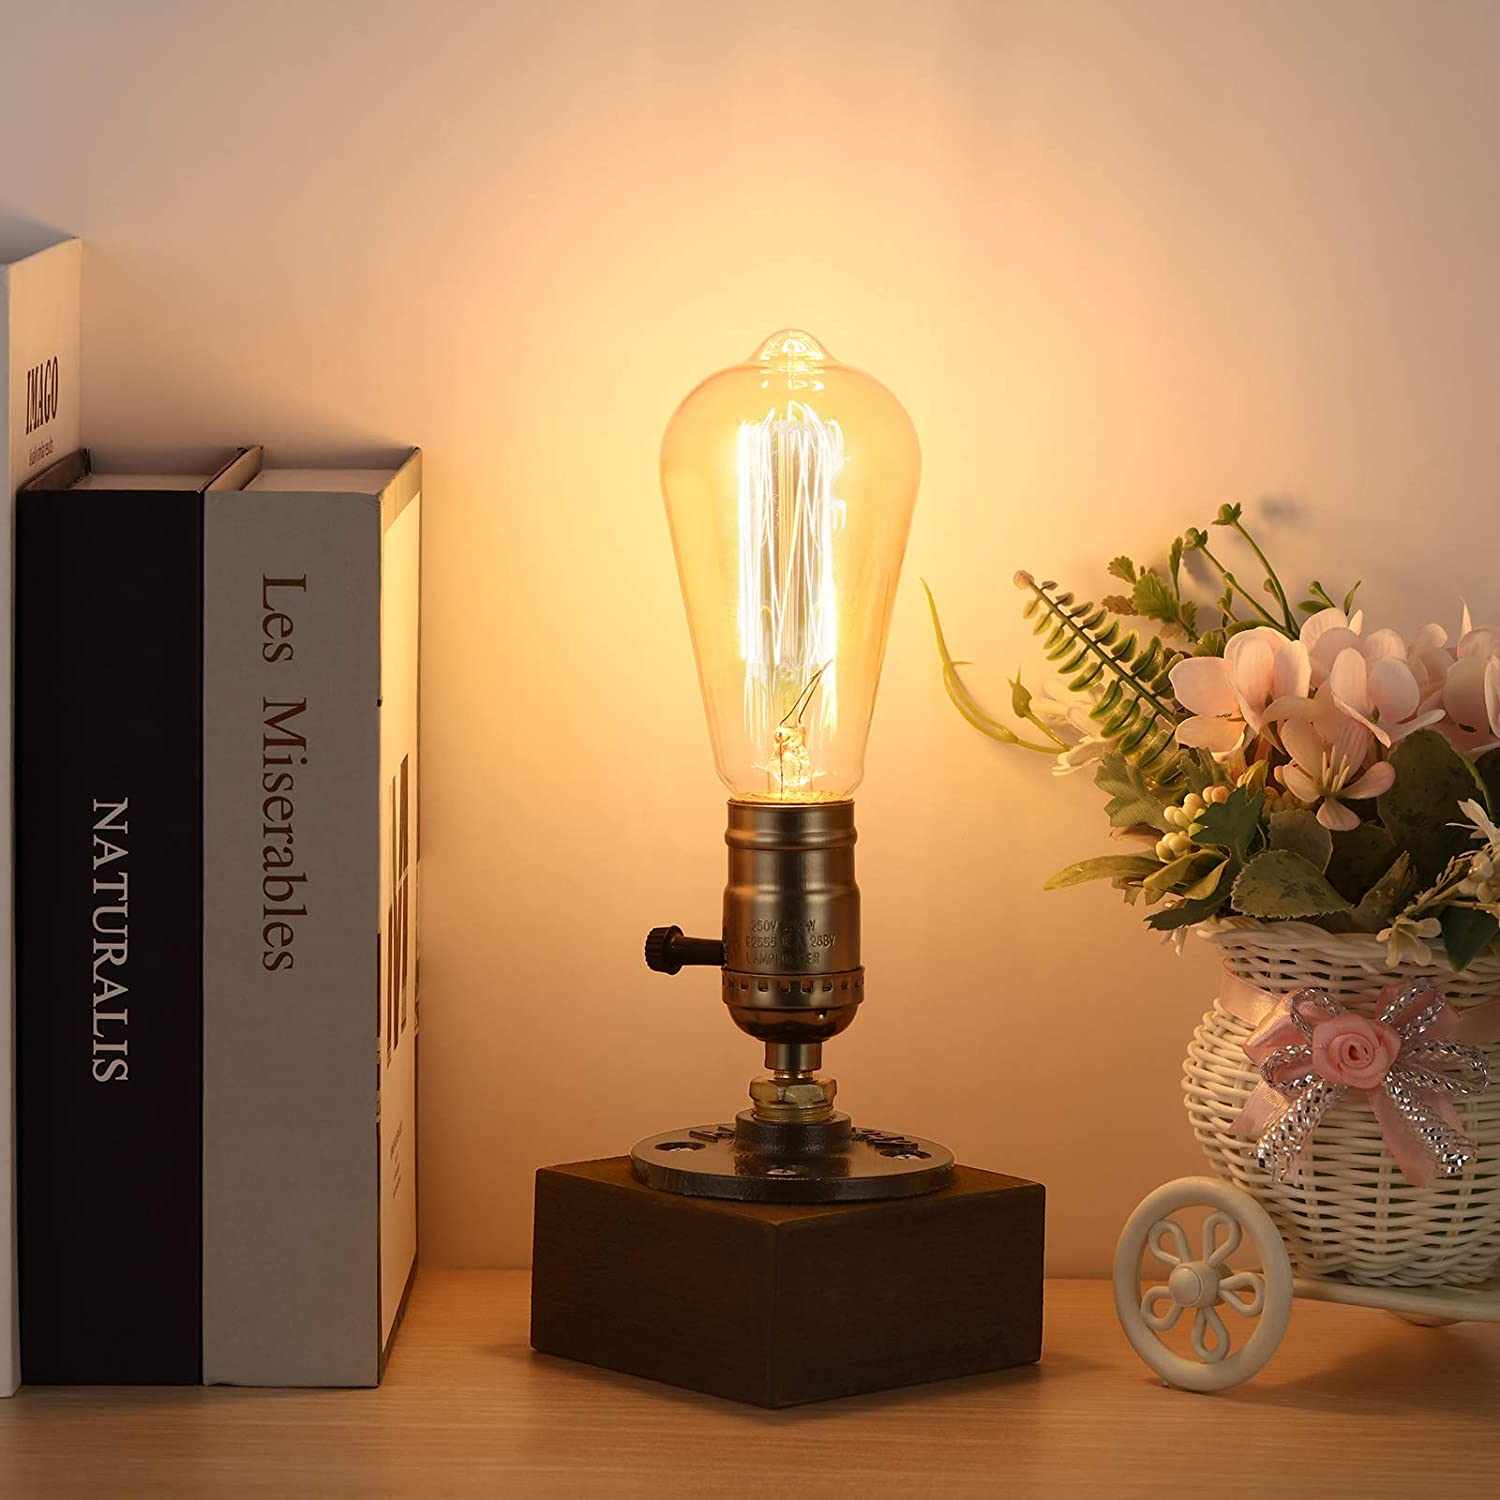 Retro Table Lamp Base, Vintage Desk Lamp Small Industrial Light Steampunk Lamp for Home Bar Café Dining Room Restaurant Lighting Decor(Without Bulb)